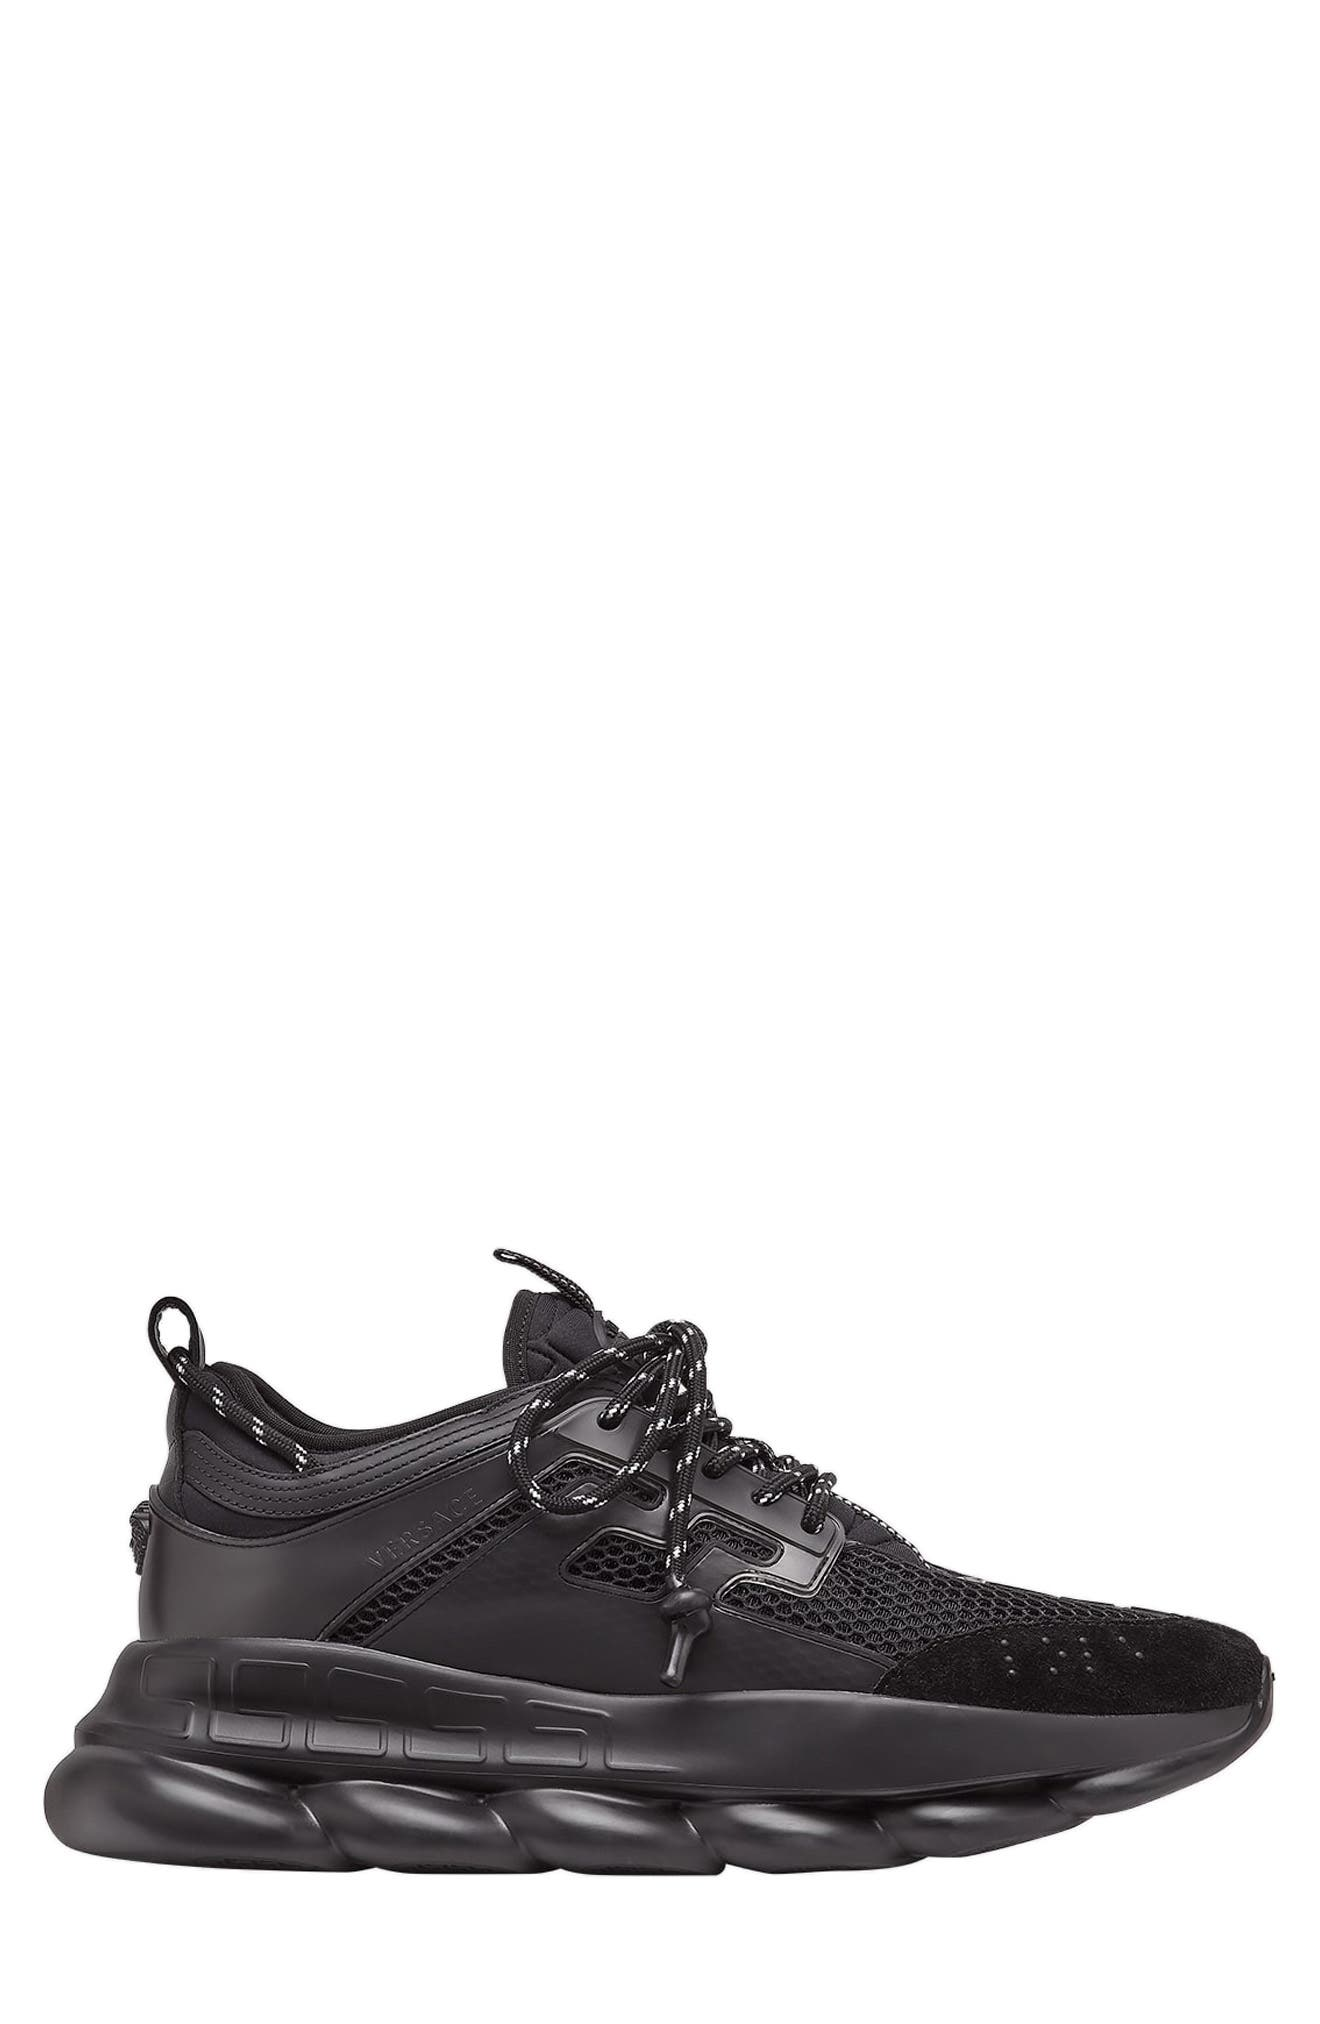 VERSACE FIRST LINE, Versace Chain Reaction Sneaker, Alternate thumbnail 3, color, NERO